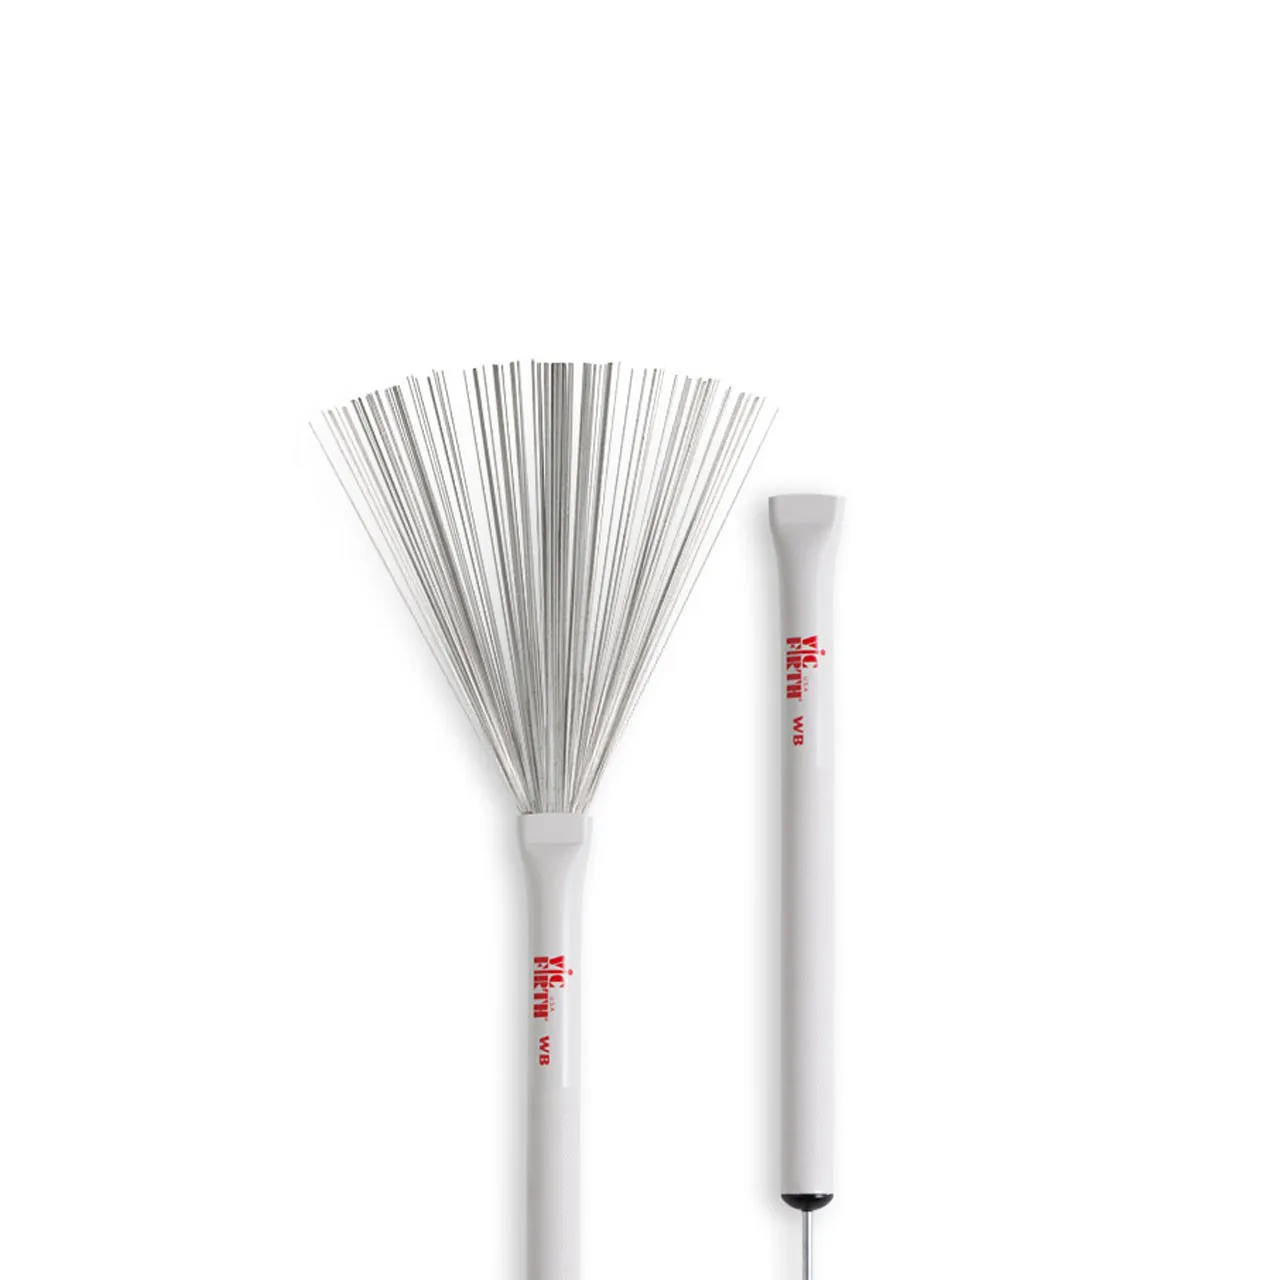 Vassourinha Jazz Brush Aco Retratil Wb Vic Firth